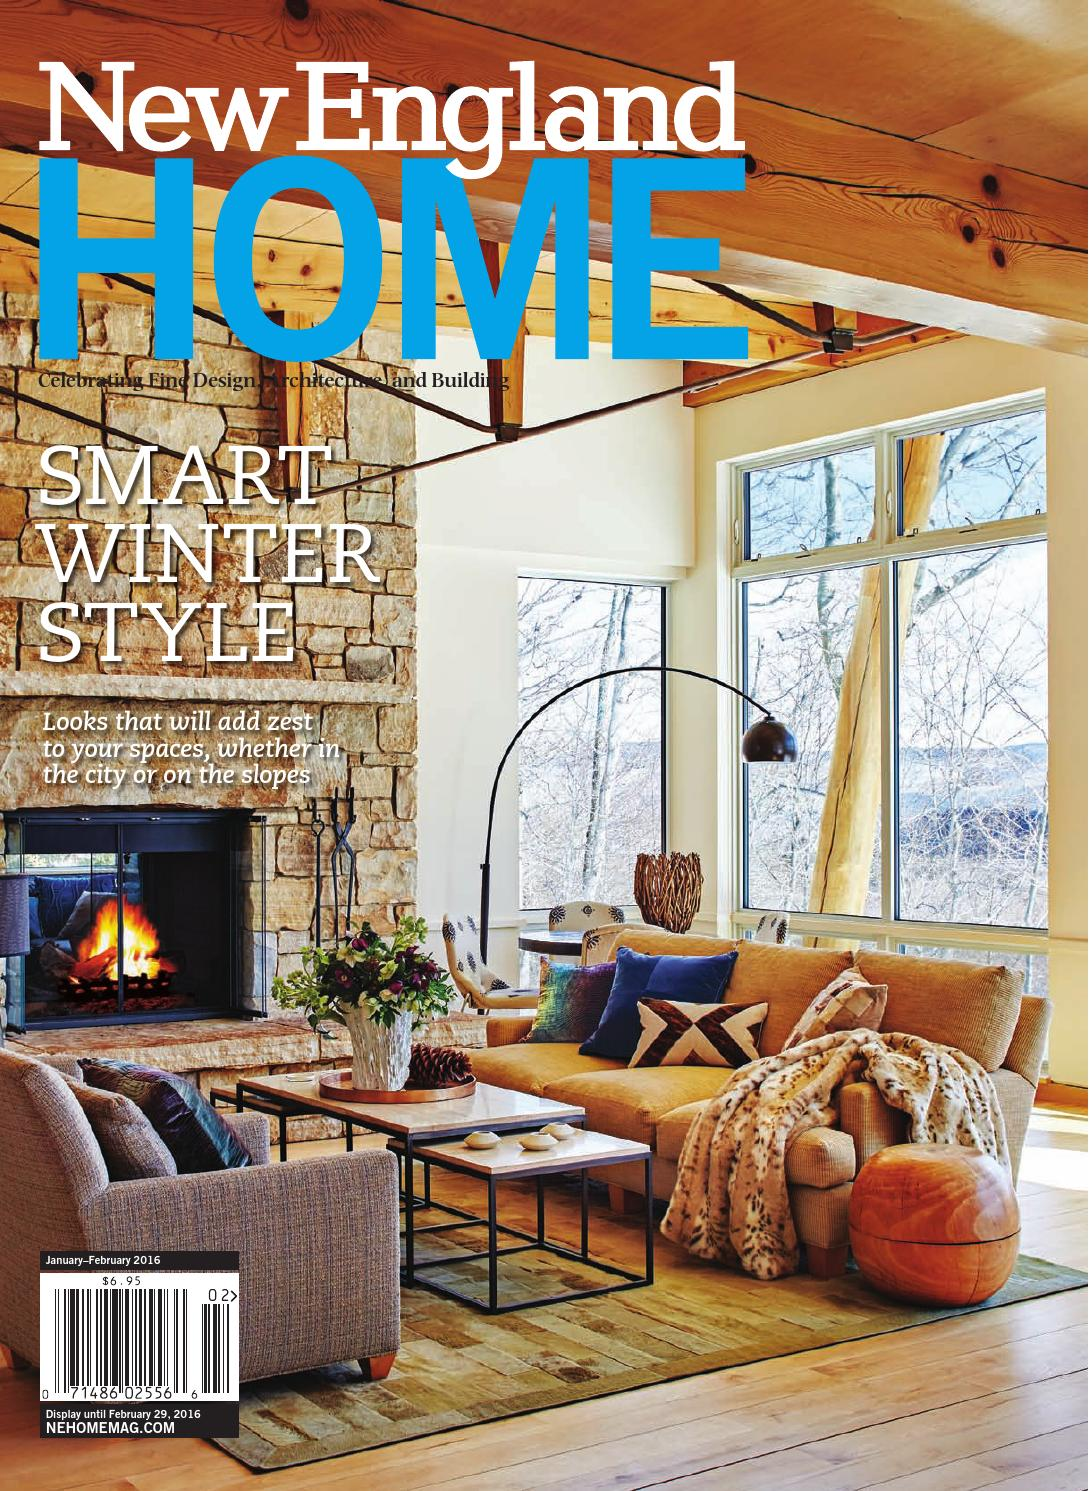 new england home janfeb 2016 - Revistas De Decoracion